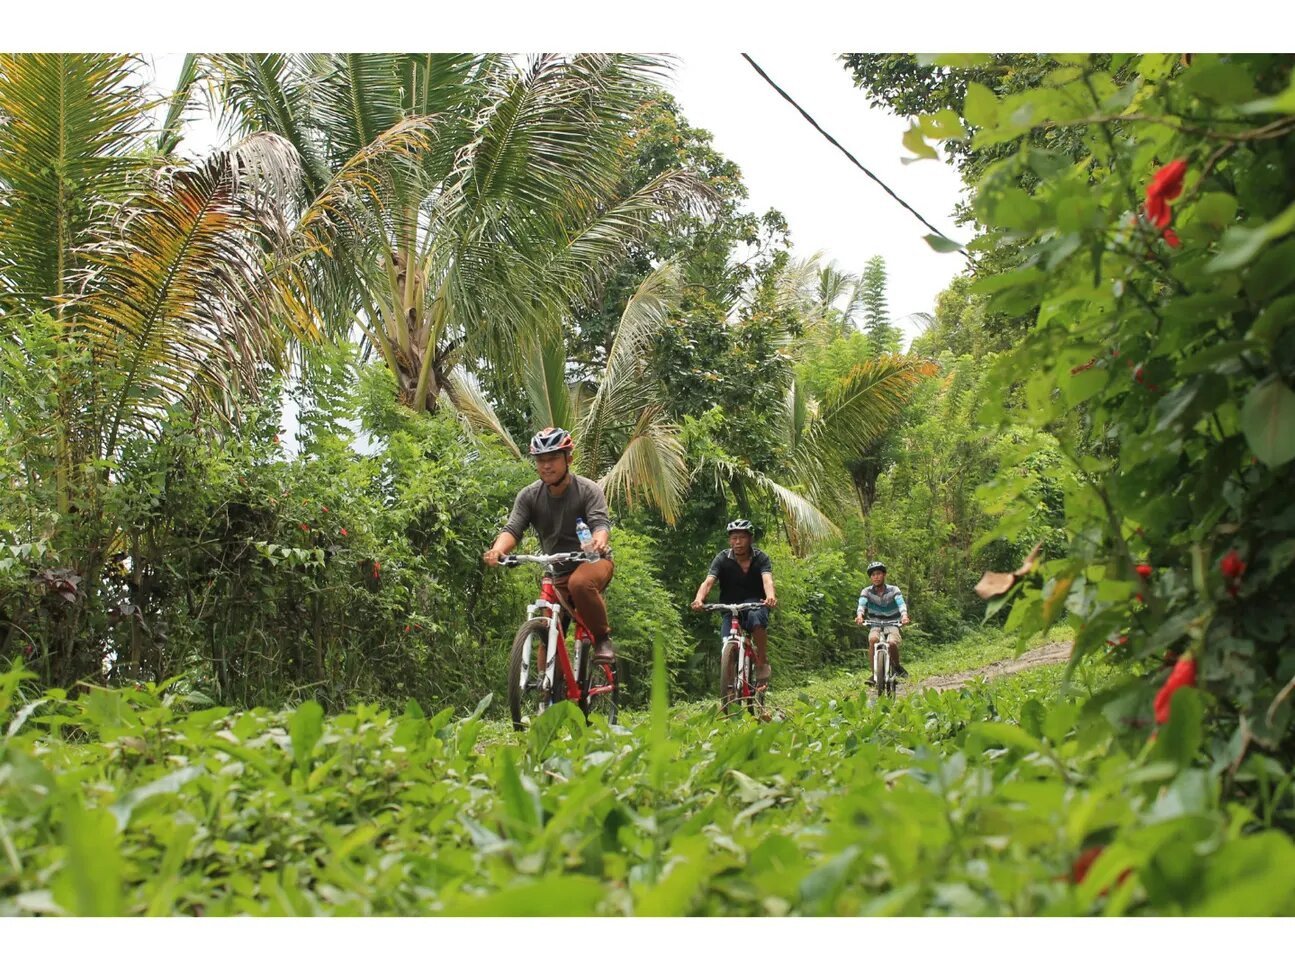 Experience authentic Bali with these four activities: Klook